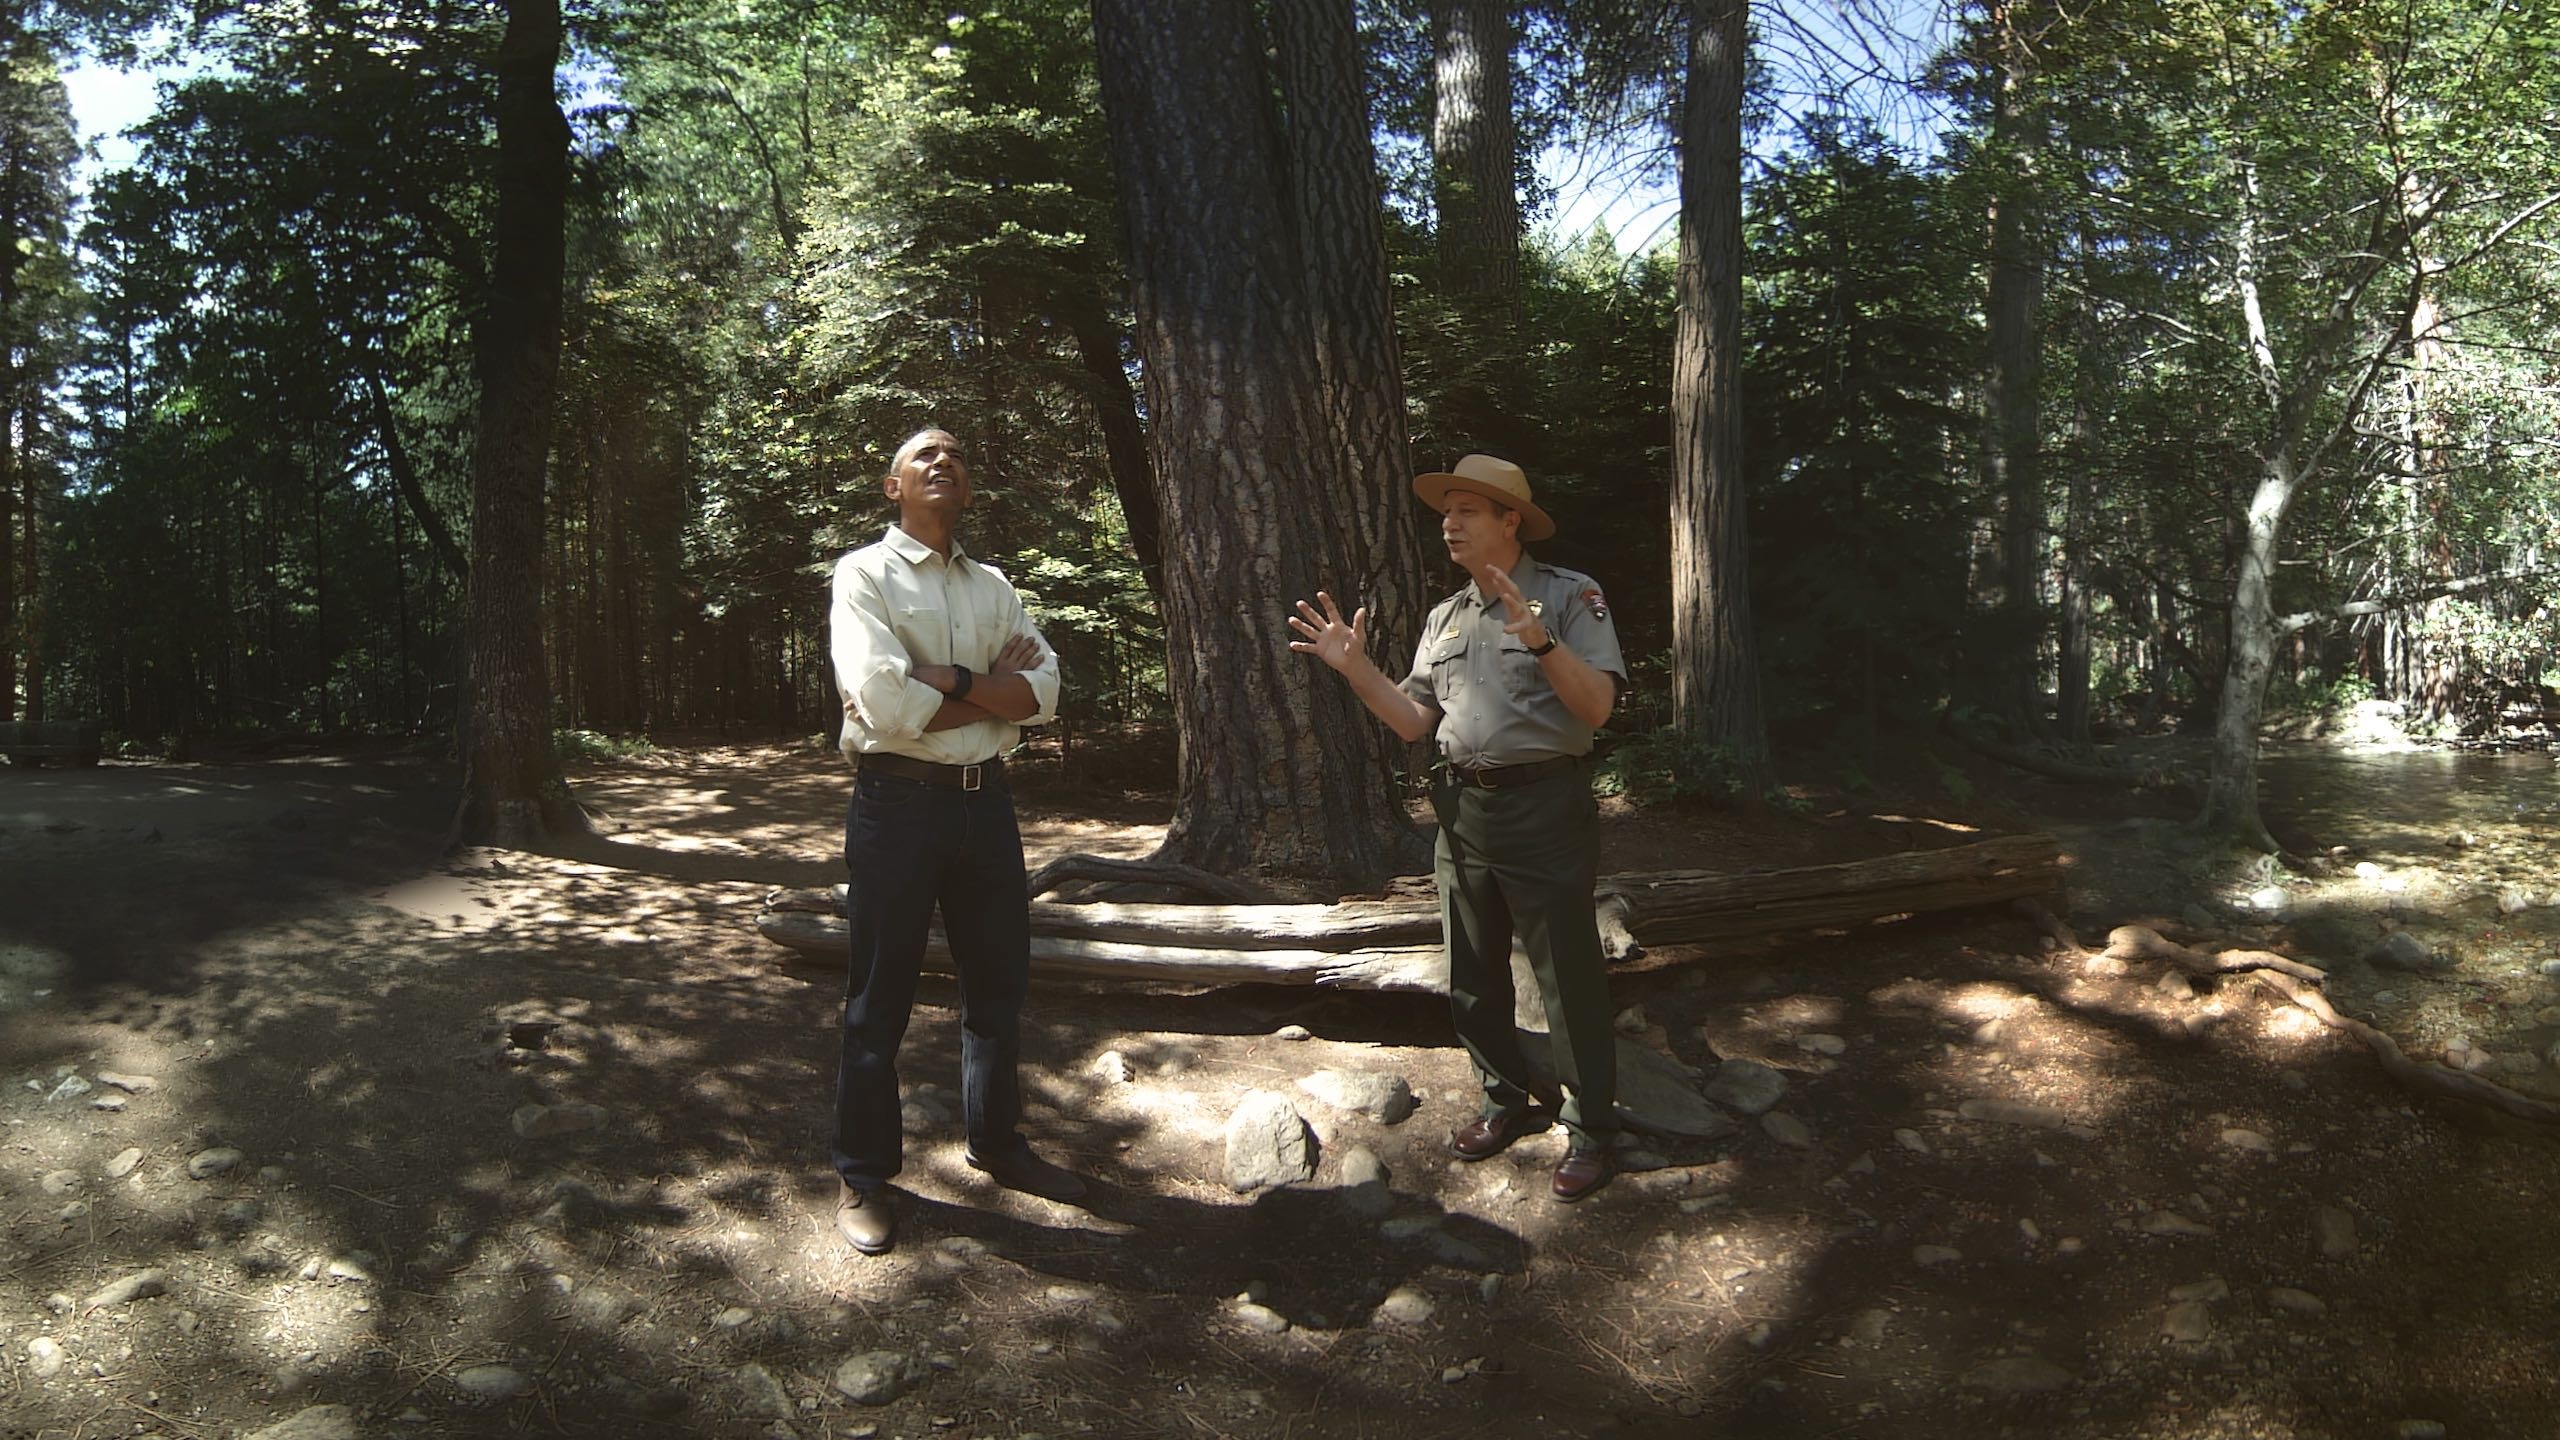 Listen in to Obama's chat in the woods about National Parks.